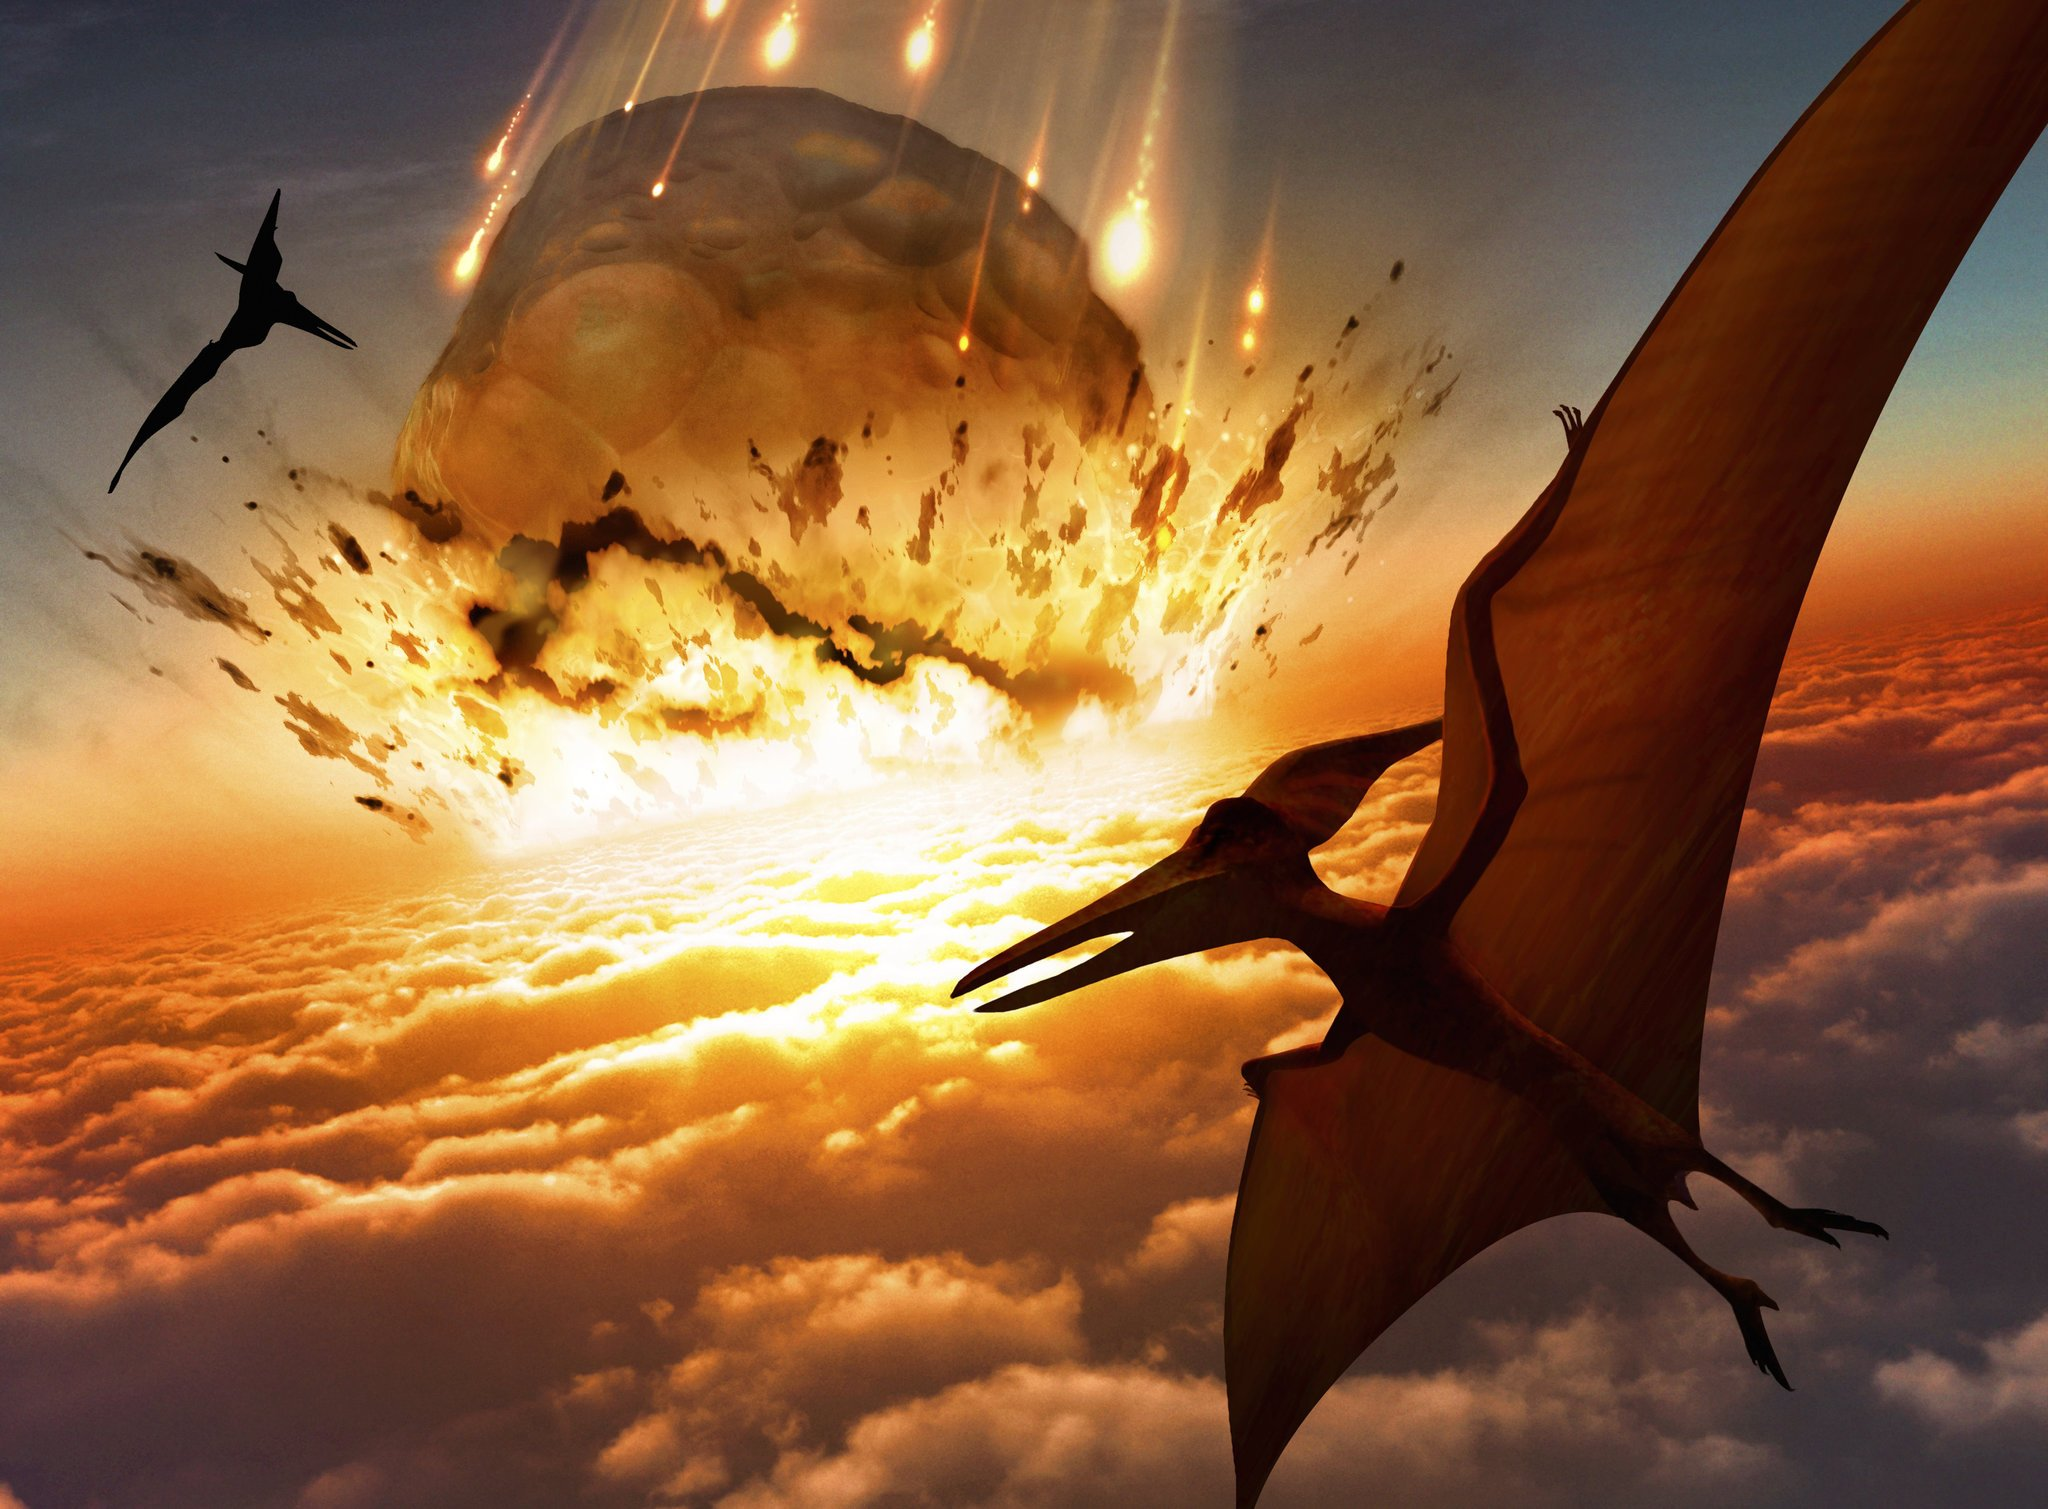 The meteorite event changed the planet forever.